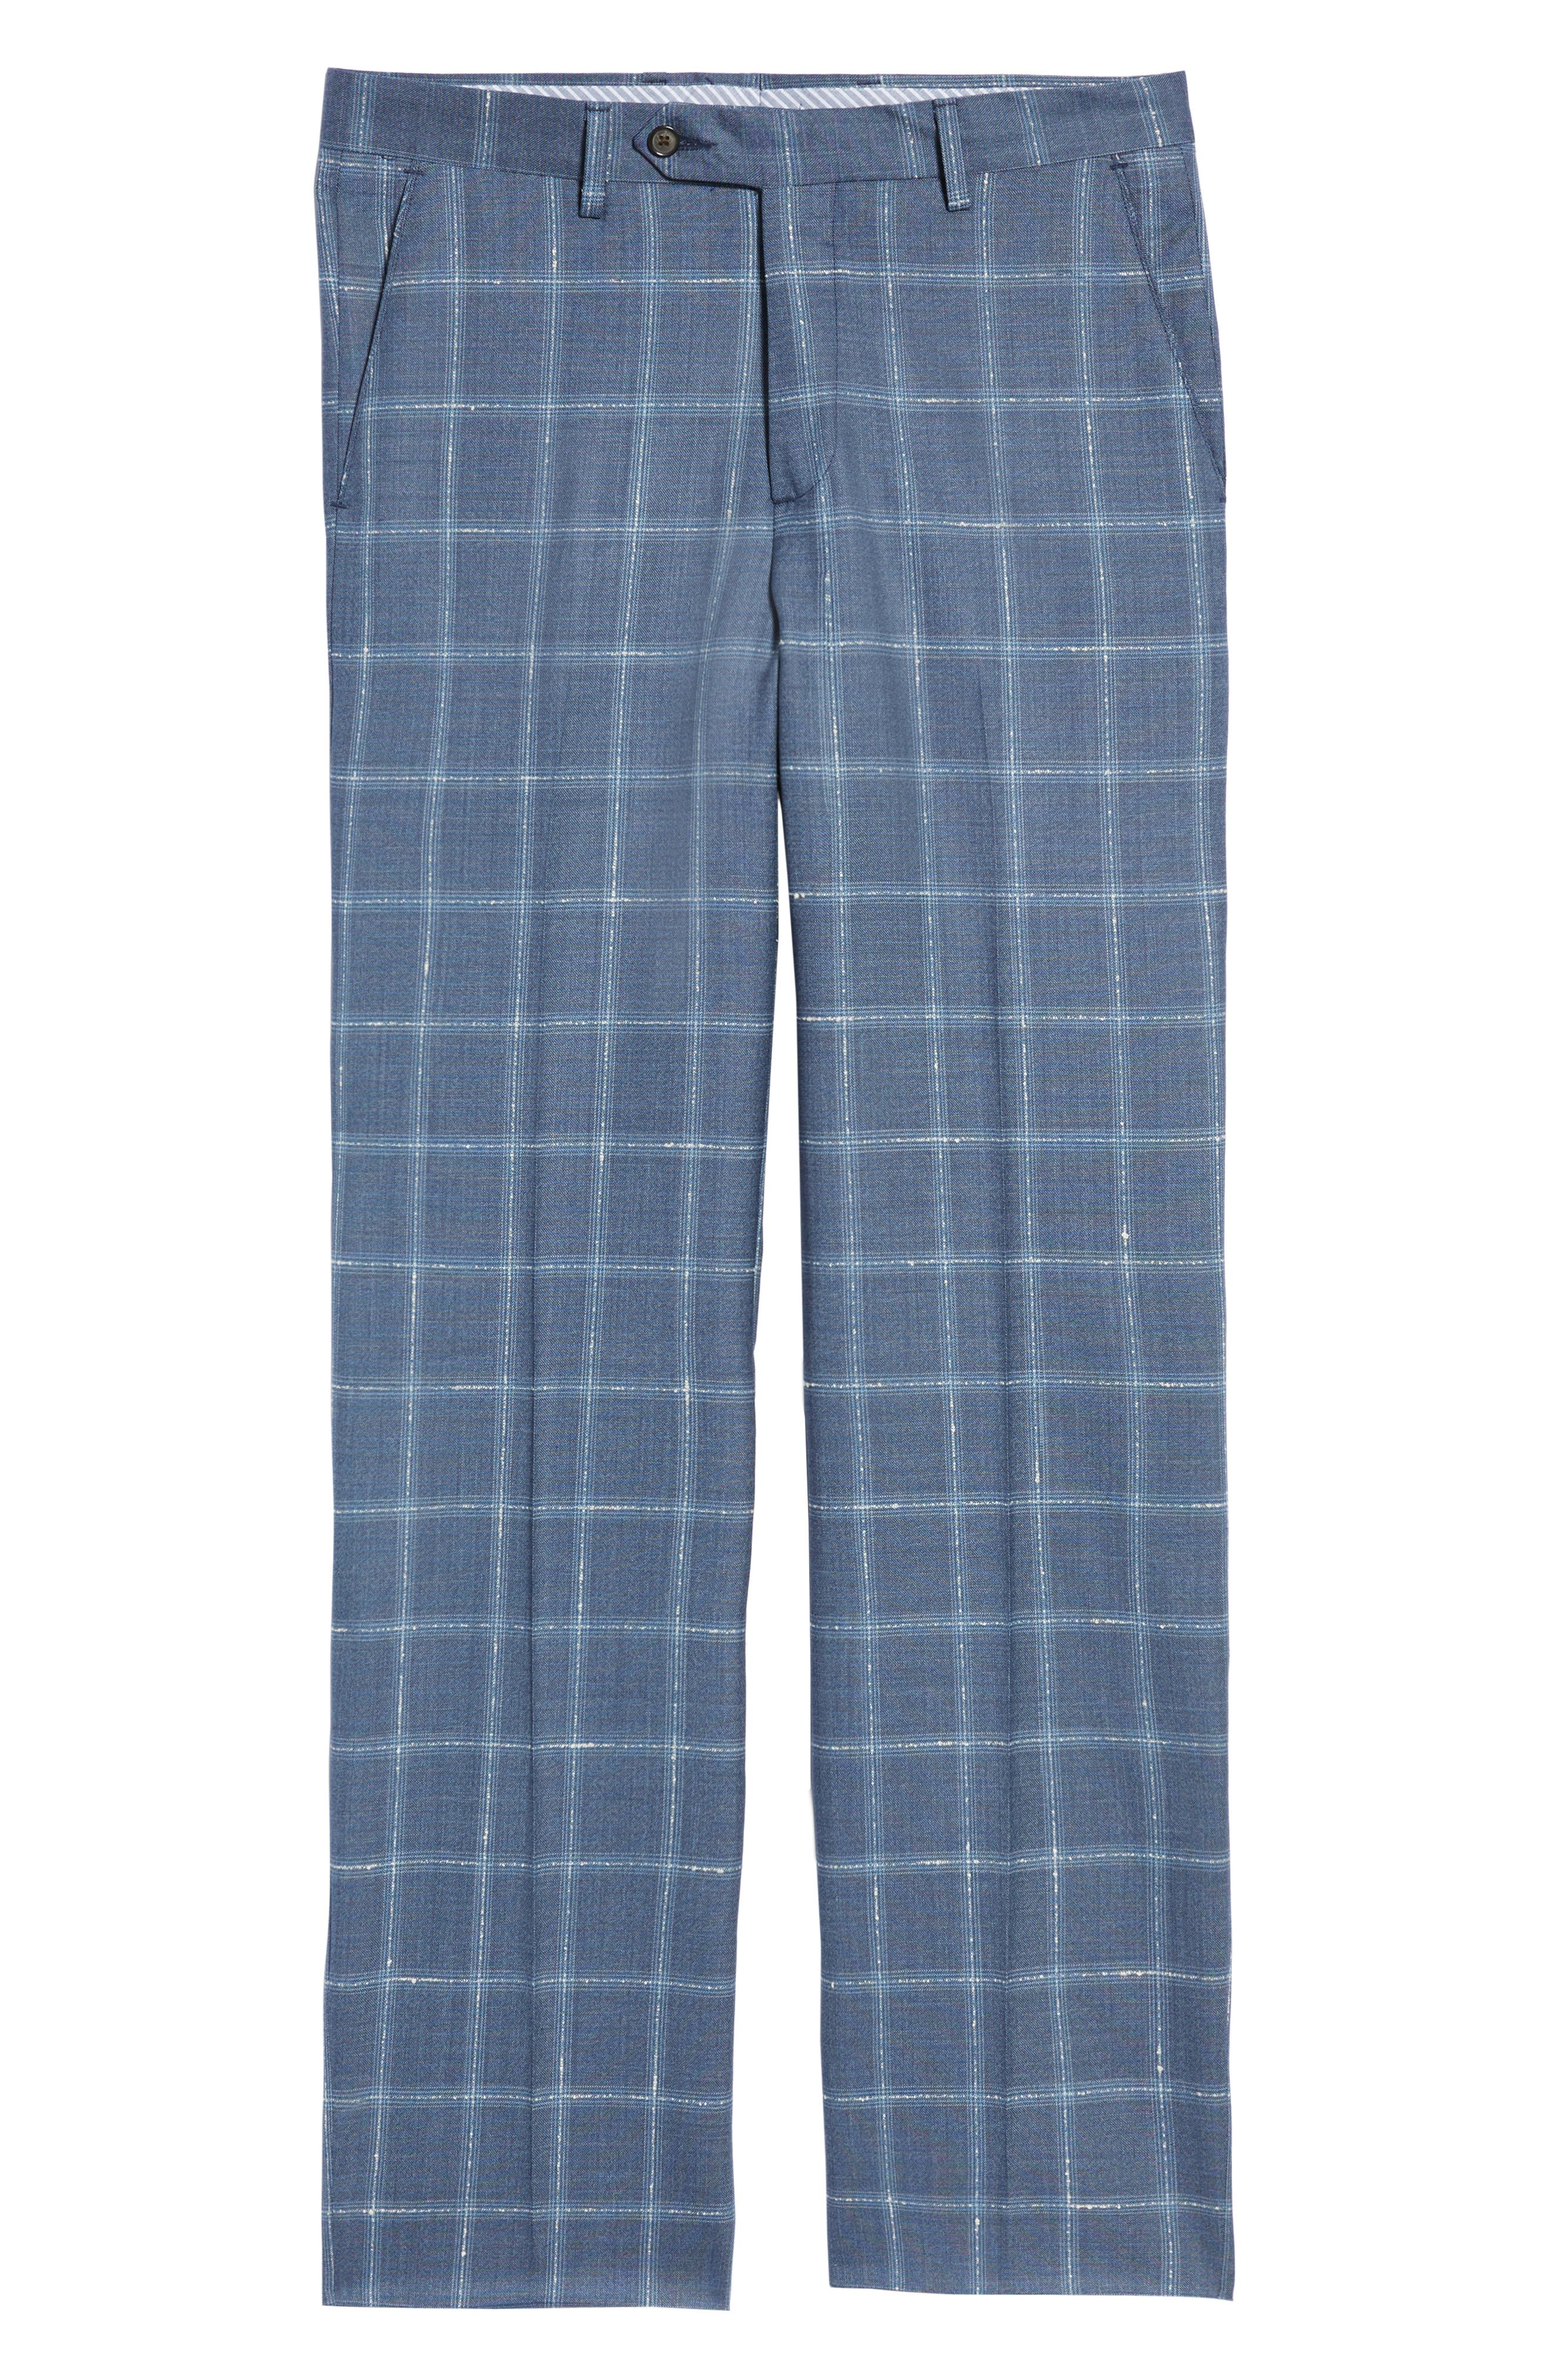 Manufacturing Flat Front Plaid Wool Trousers,                             Alternate thumbnail 6, color,                             NAVY